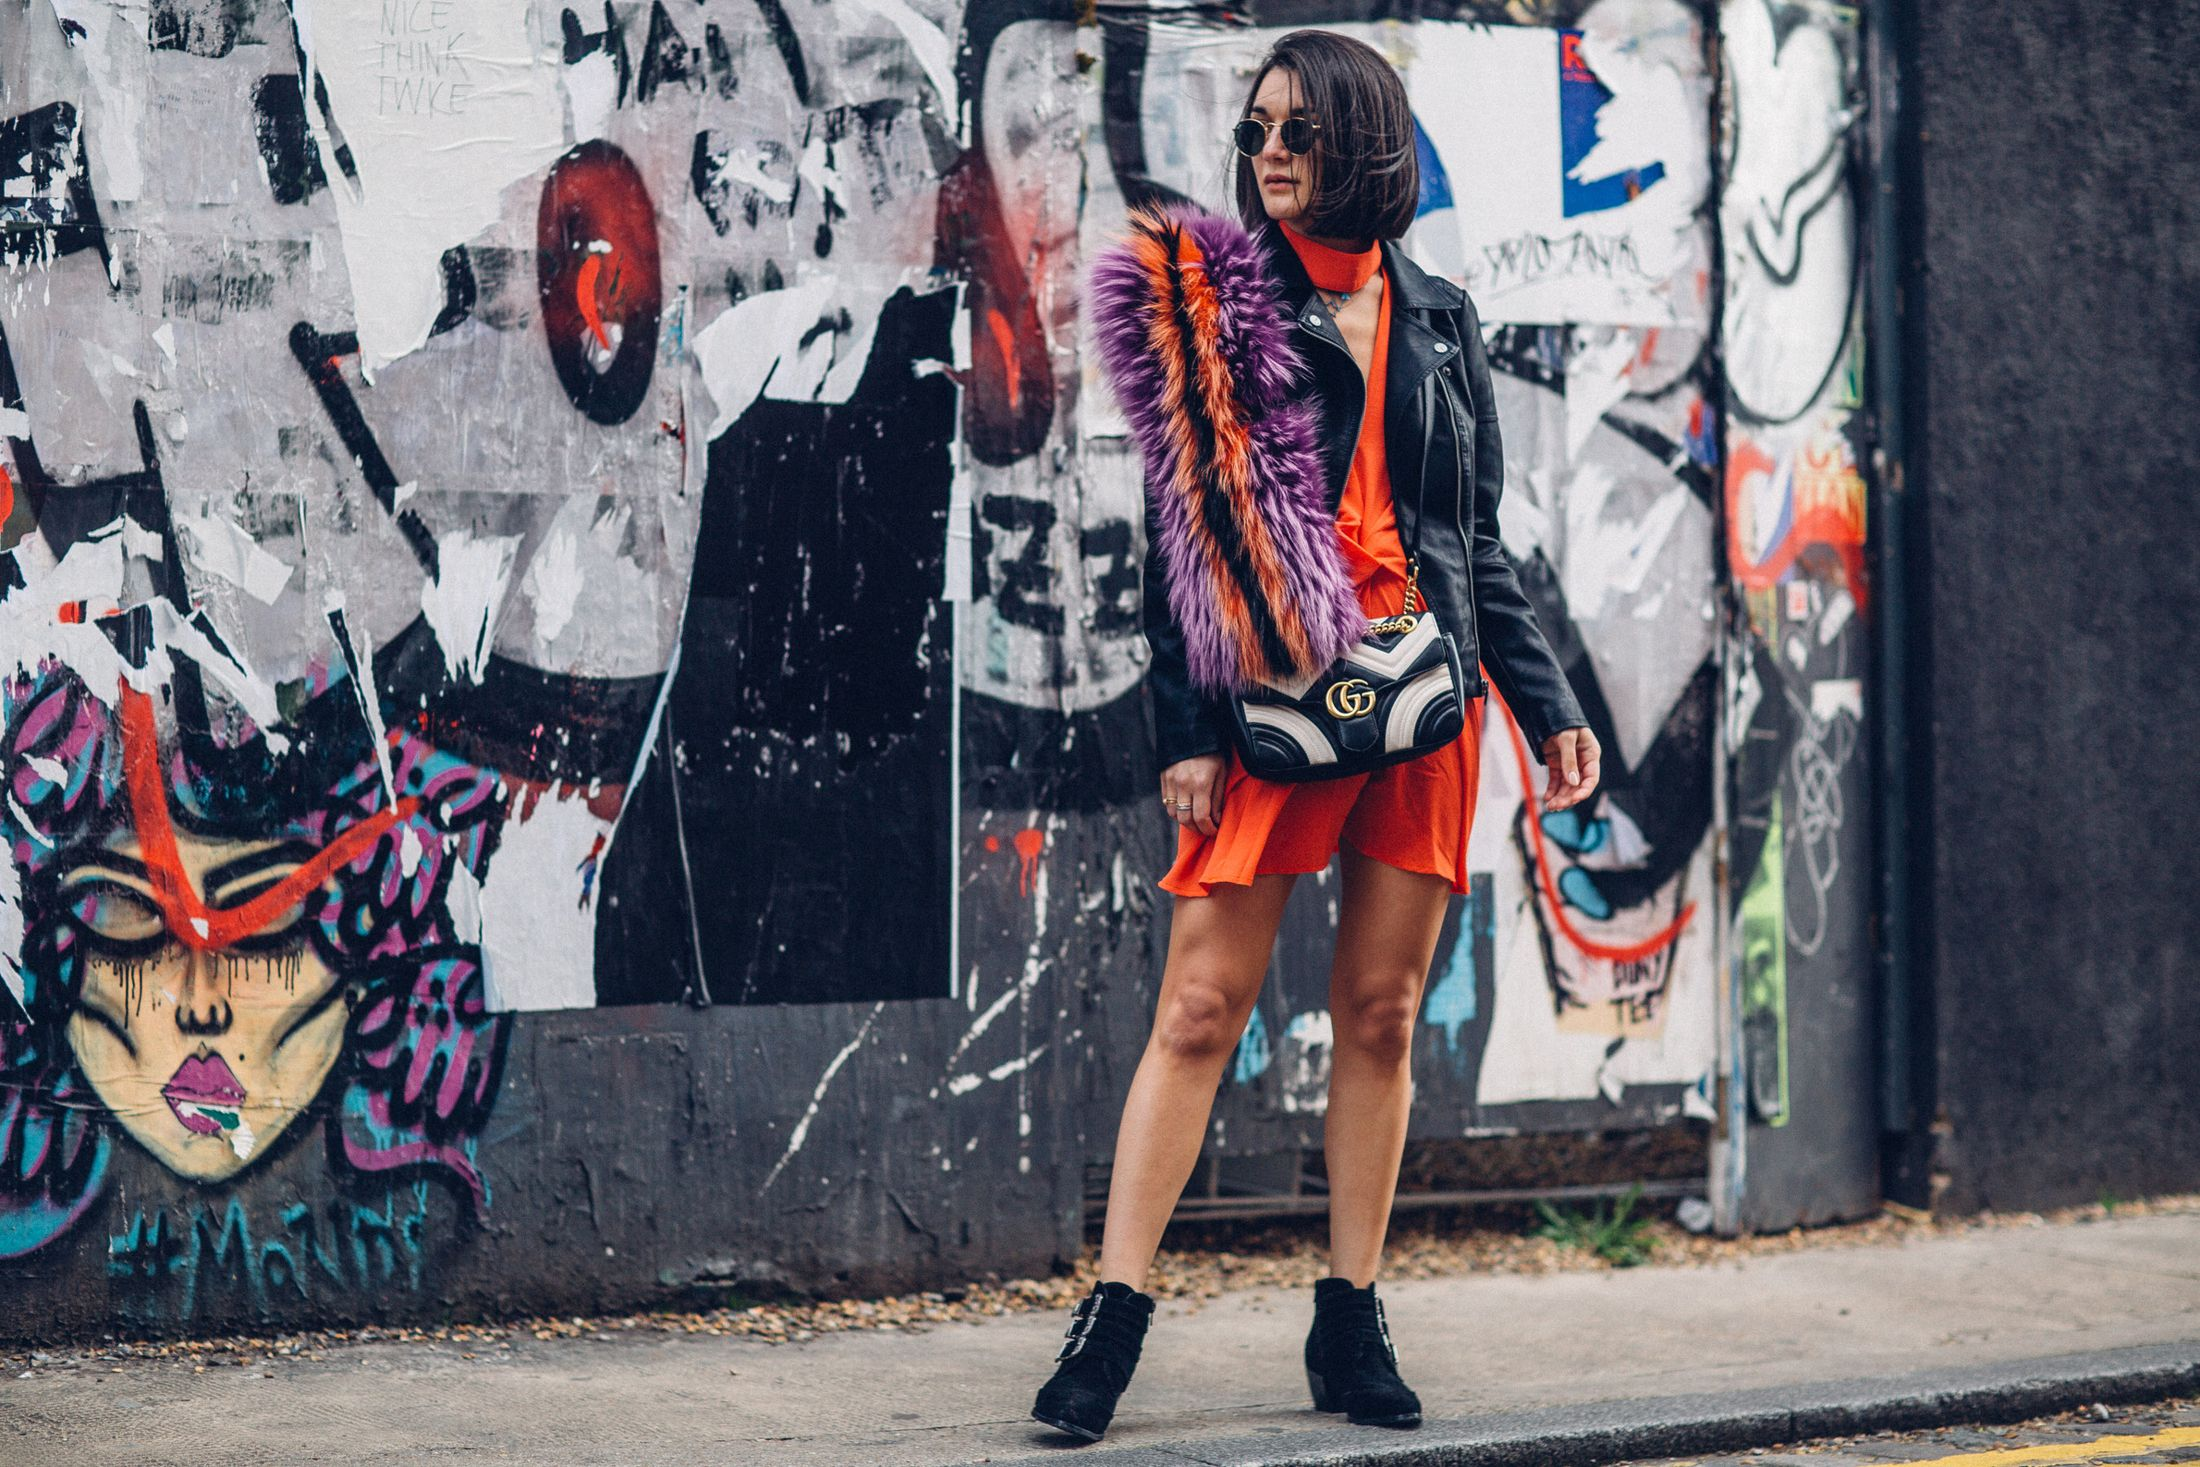 Anisa Sojka styles Brand Attic orange choker dress | Black Only faux leather biker jacket | Western silver buckle ankle boots | Round classic Rayban sunglasses | Striped Gucci CC marmont cross-body bag with gold chain | Purple fur stole over the shoulder | Brunette straight shoulder length hair | Fashion blogger street style shot by Moeez Ali in the graffiti streets of Shoreditch, London